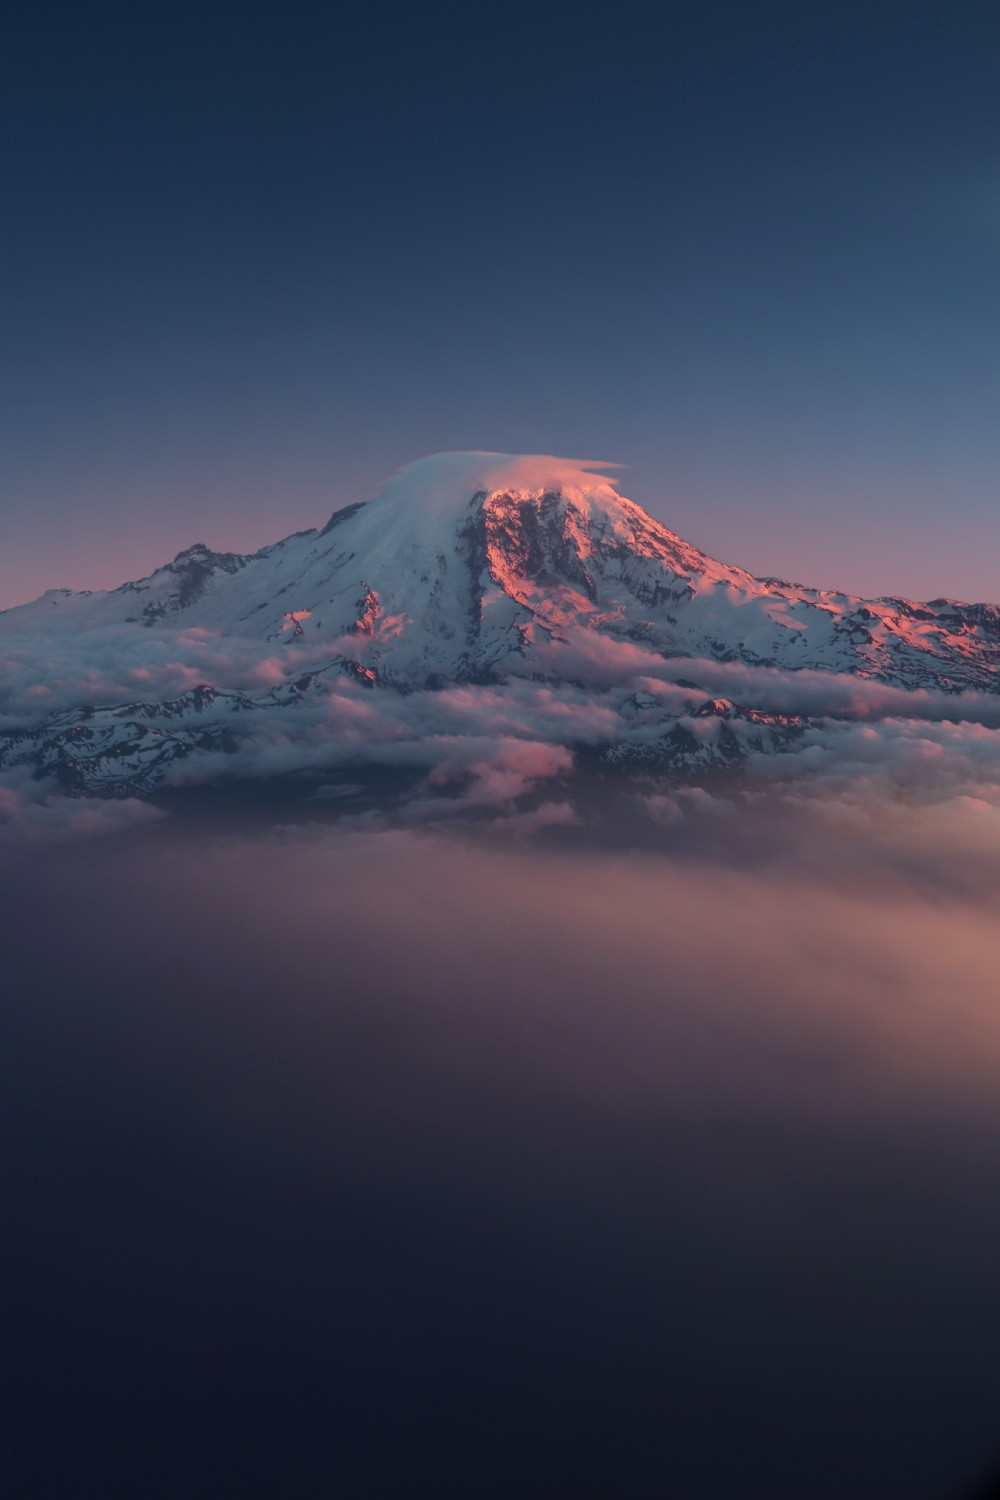 Mount Rainier, Wash. State, before the snow and ice melted.